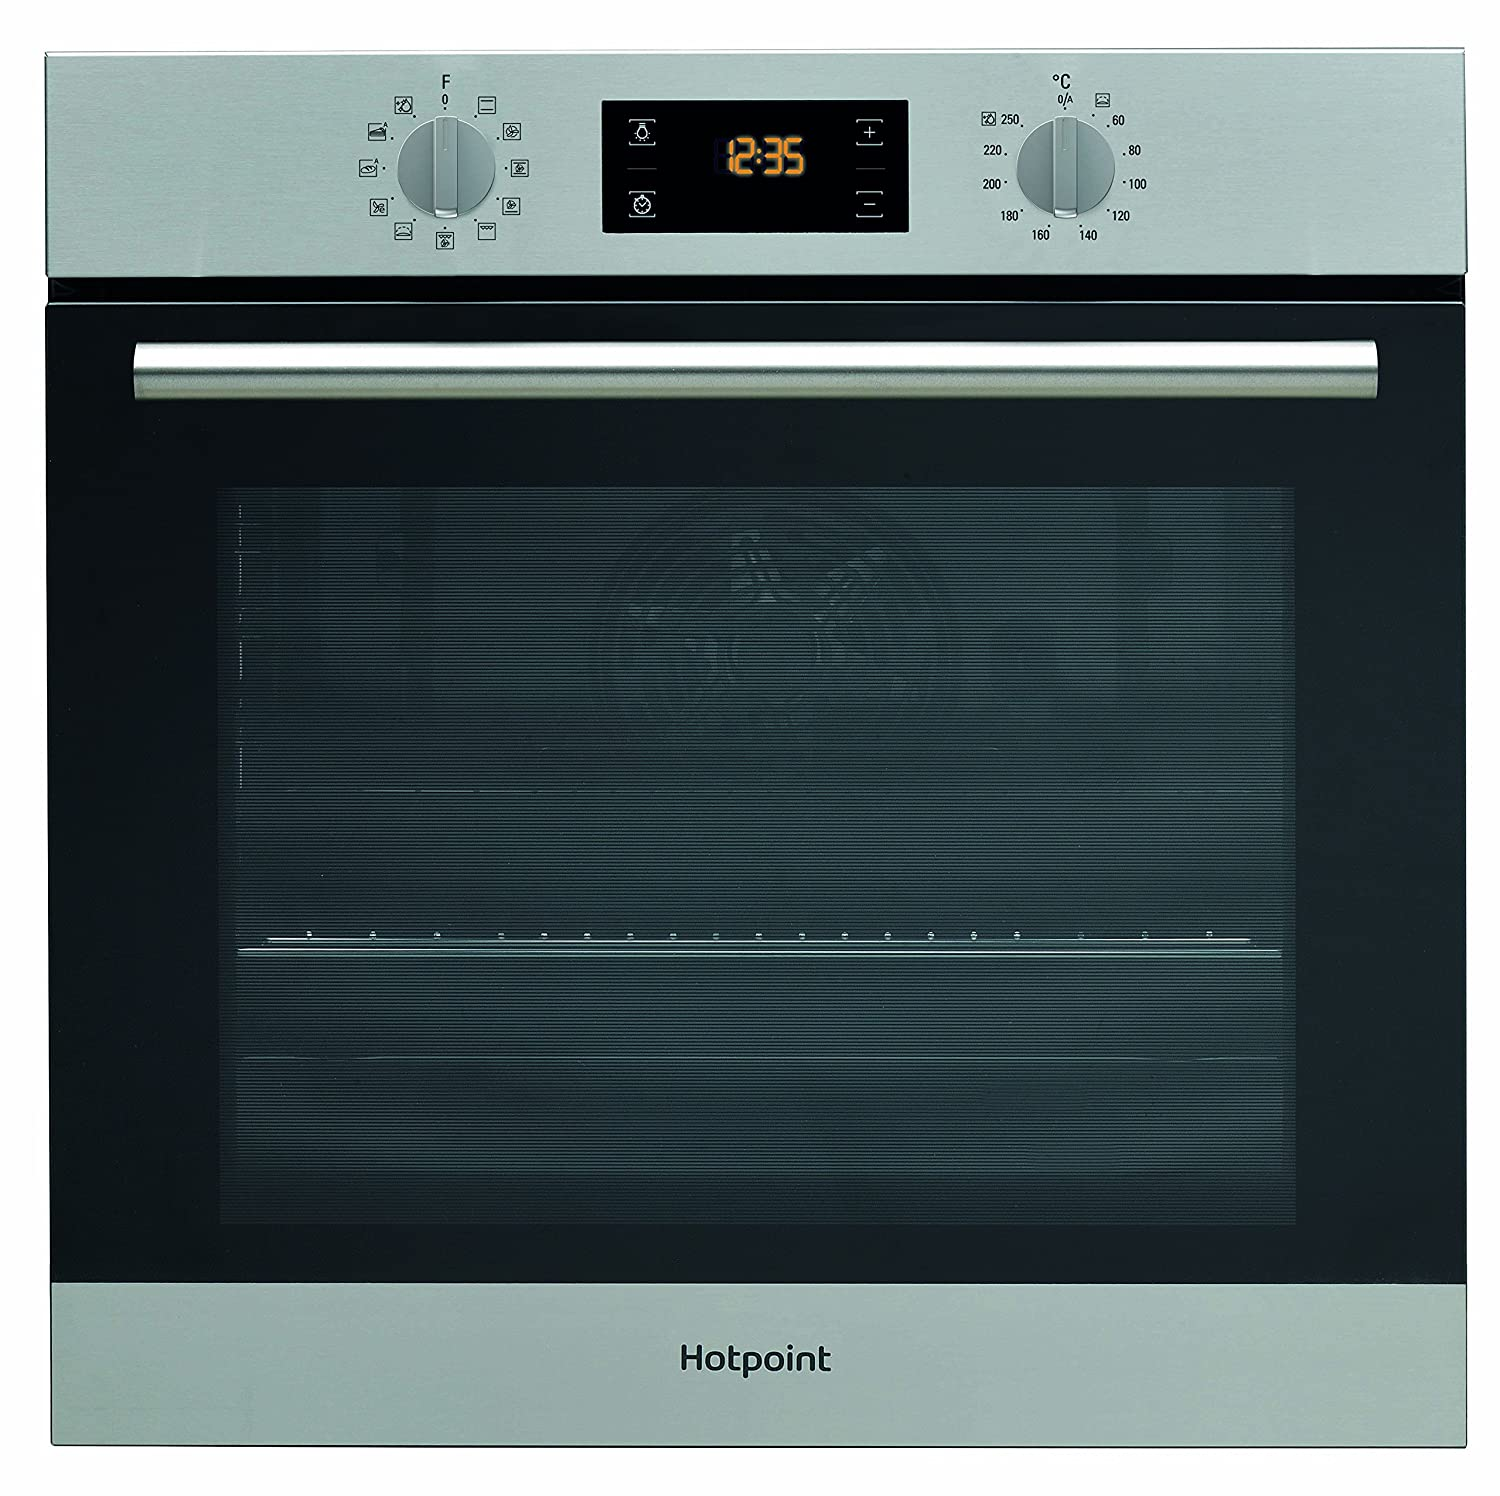 Hotpoint SA2844HIX Built-In A+ Rated Single Oven in Stainless Steel Indesit Group